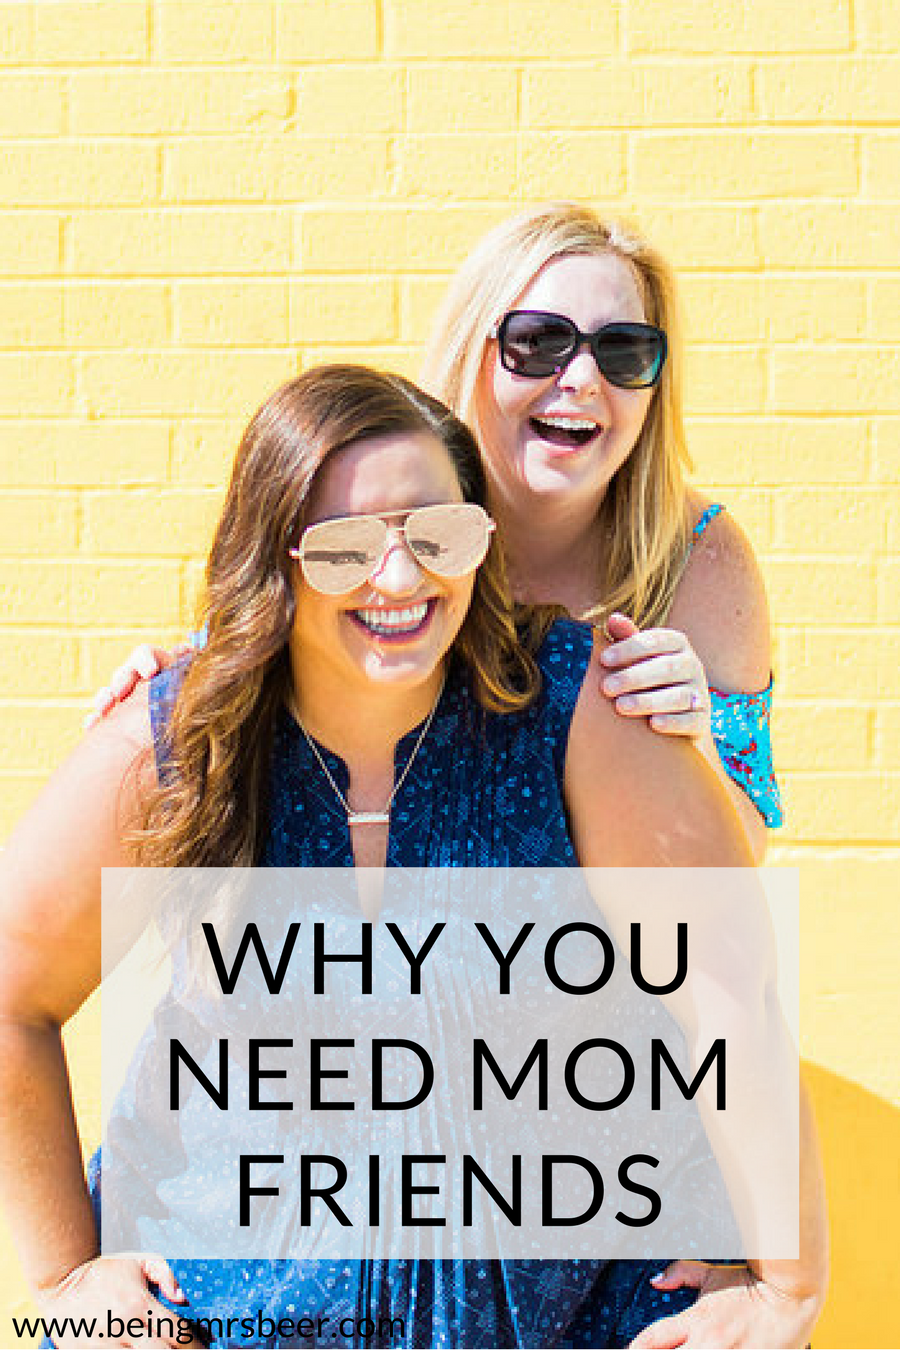 When you have a baby, there are countless things you need. One thing you shouldn't leave off the list? Mom friends.